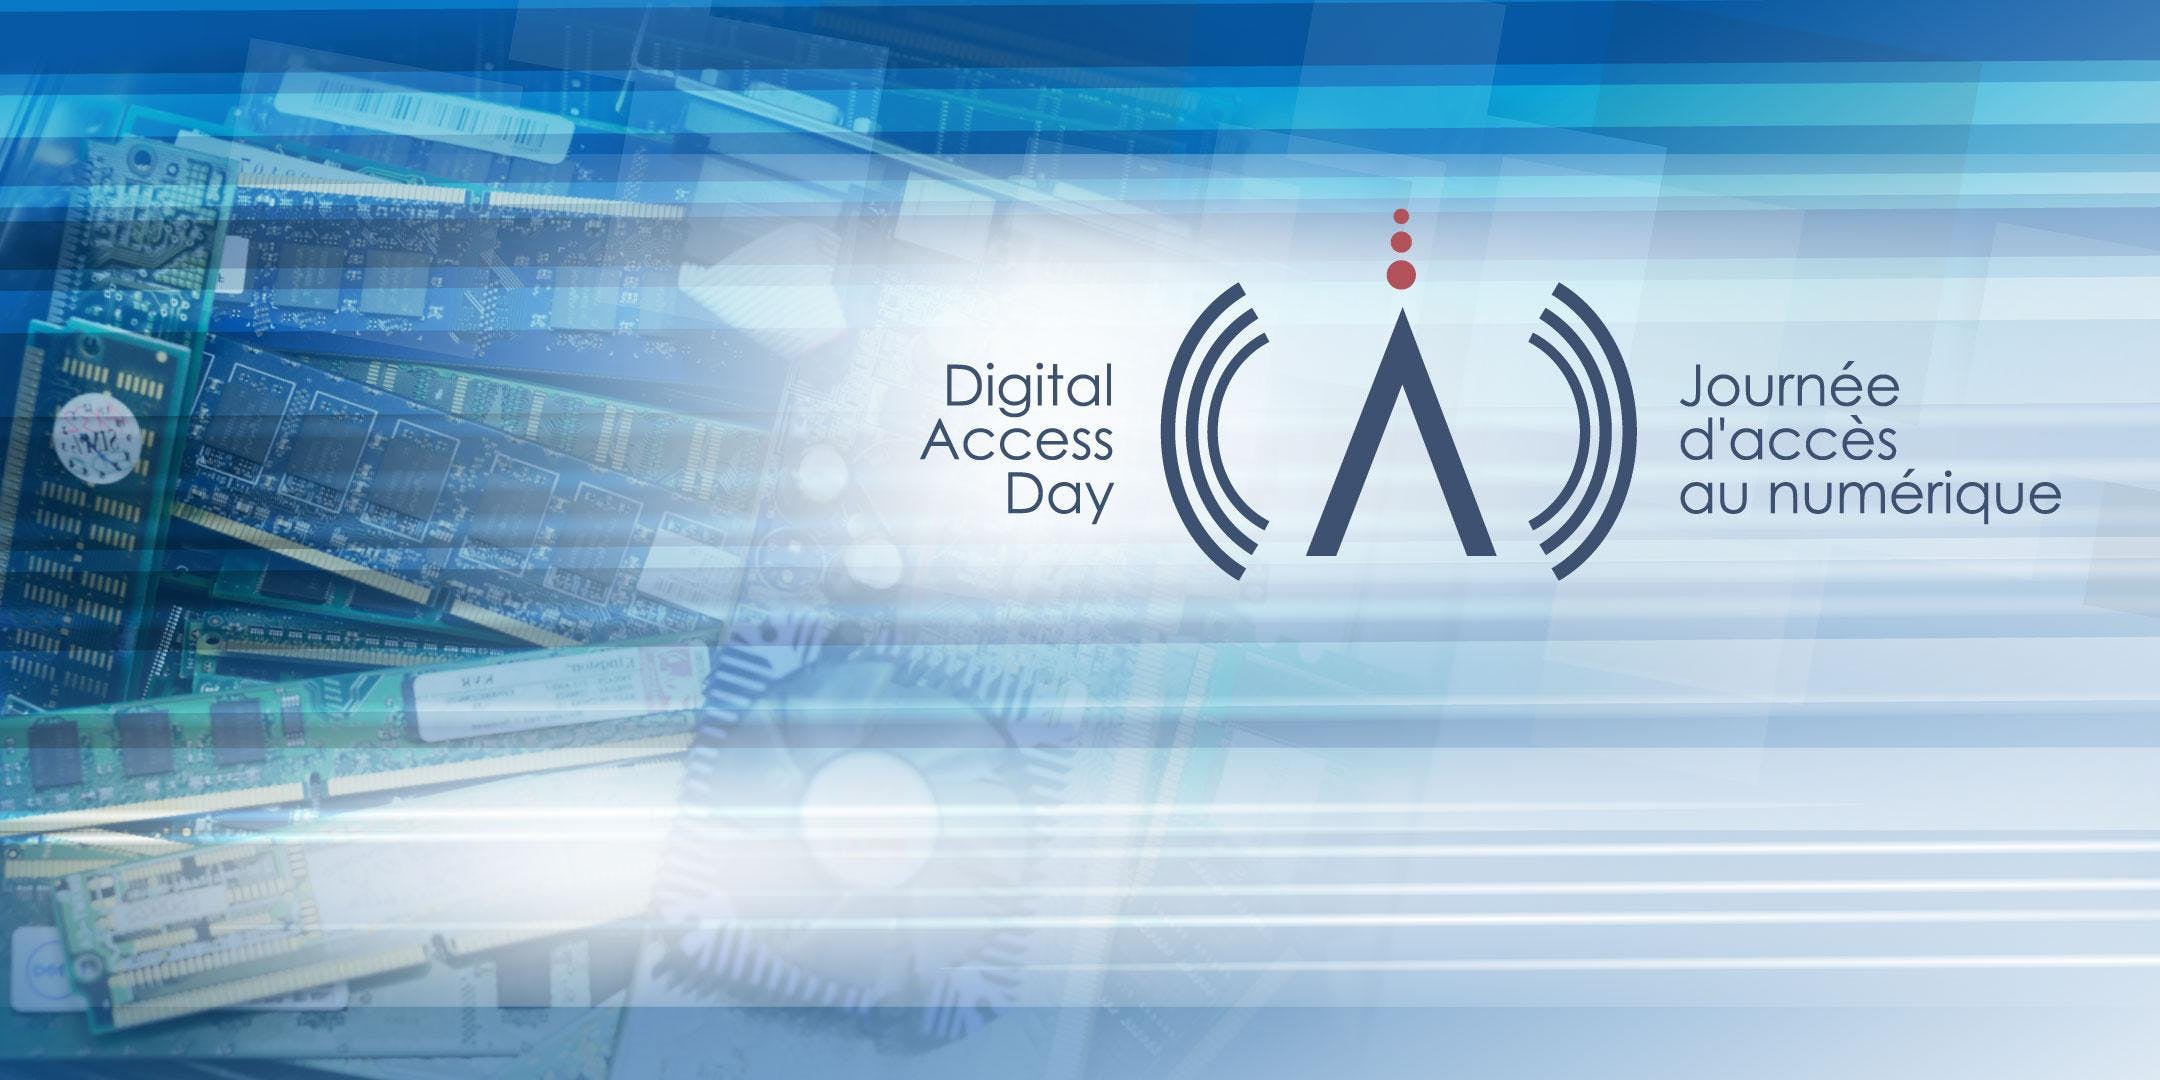 Digital Access Day